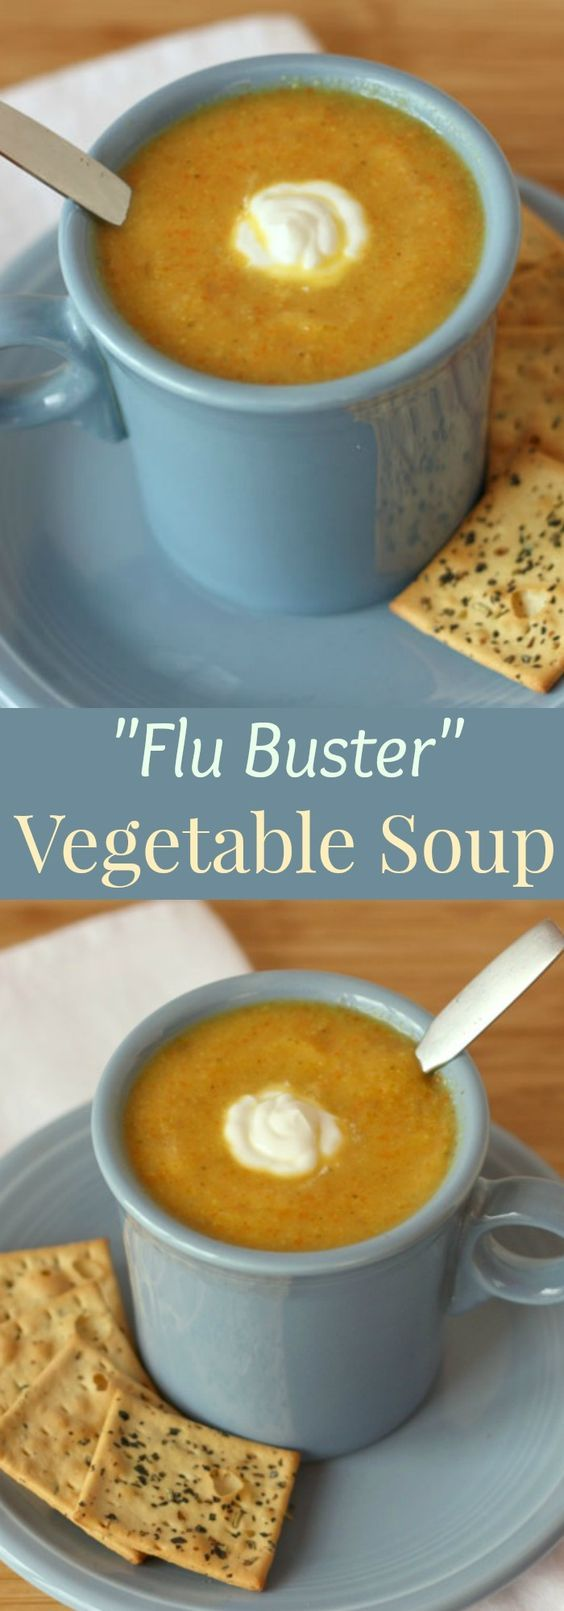 """""""Flu Buster"""" Vegetable Soup recipe. A delicious, creamy vegetable soup recipe without any cream, packed with lots of antiviral goodness. Gluten free and vegan."""